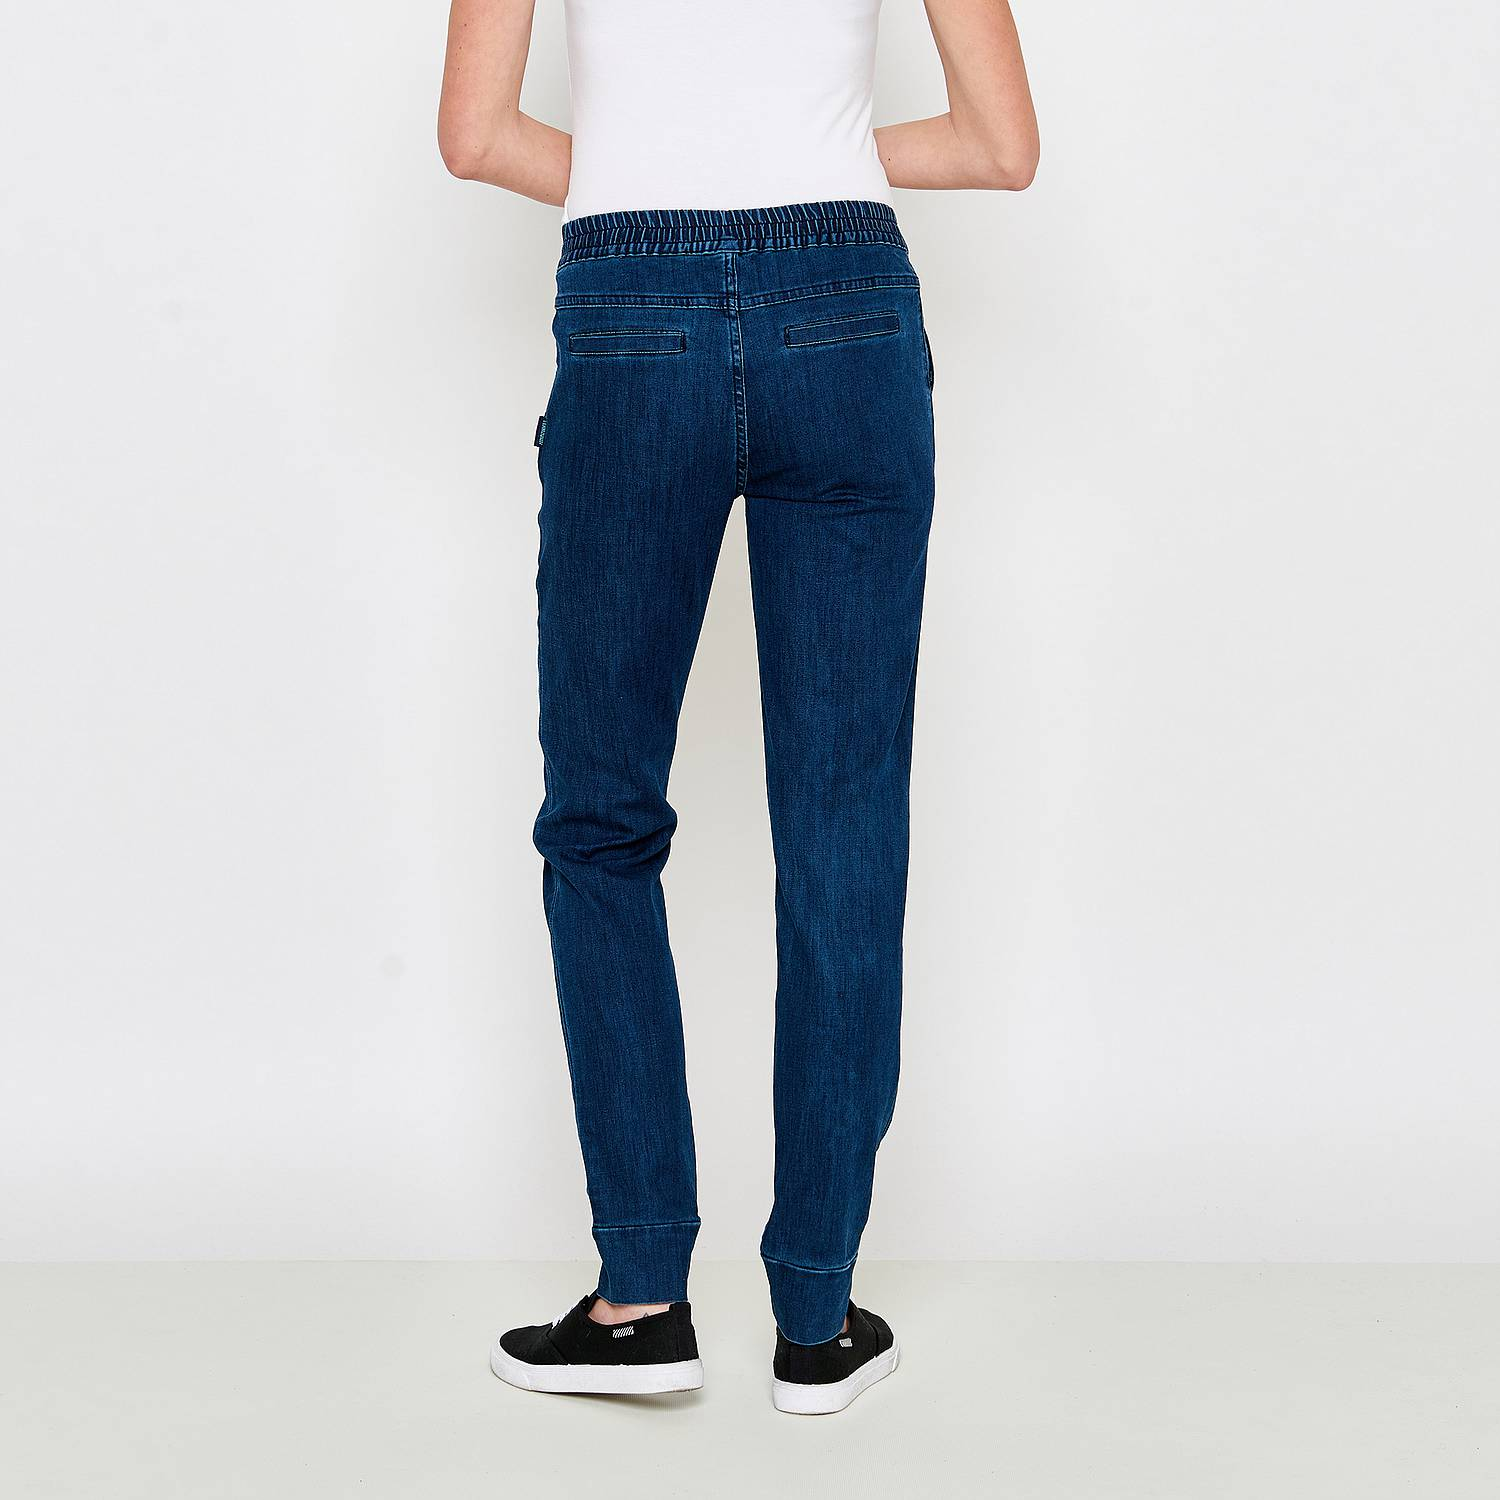 Jeans Adonia